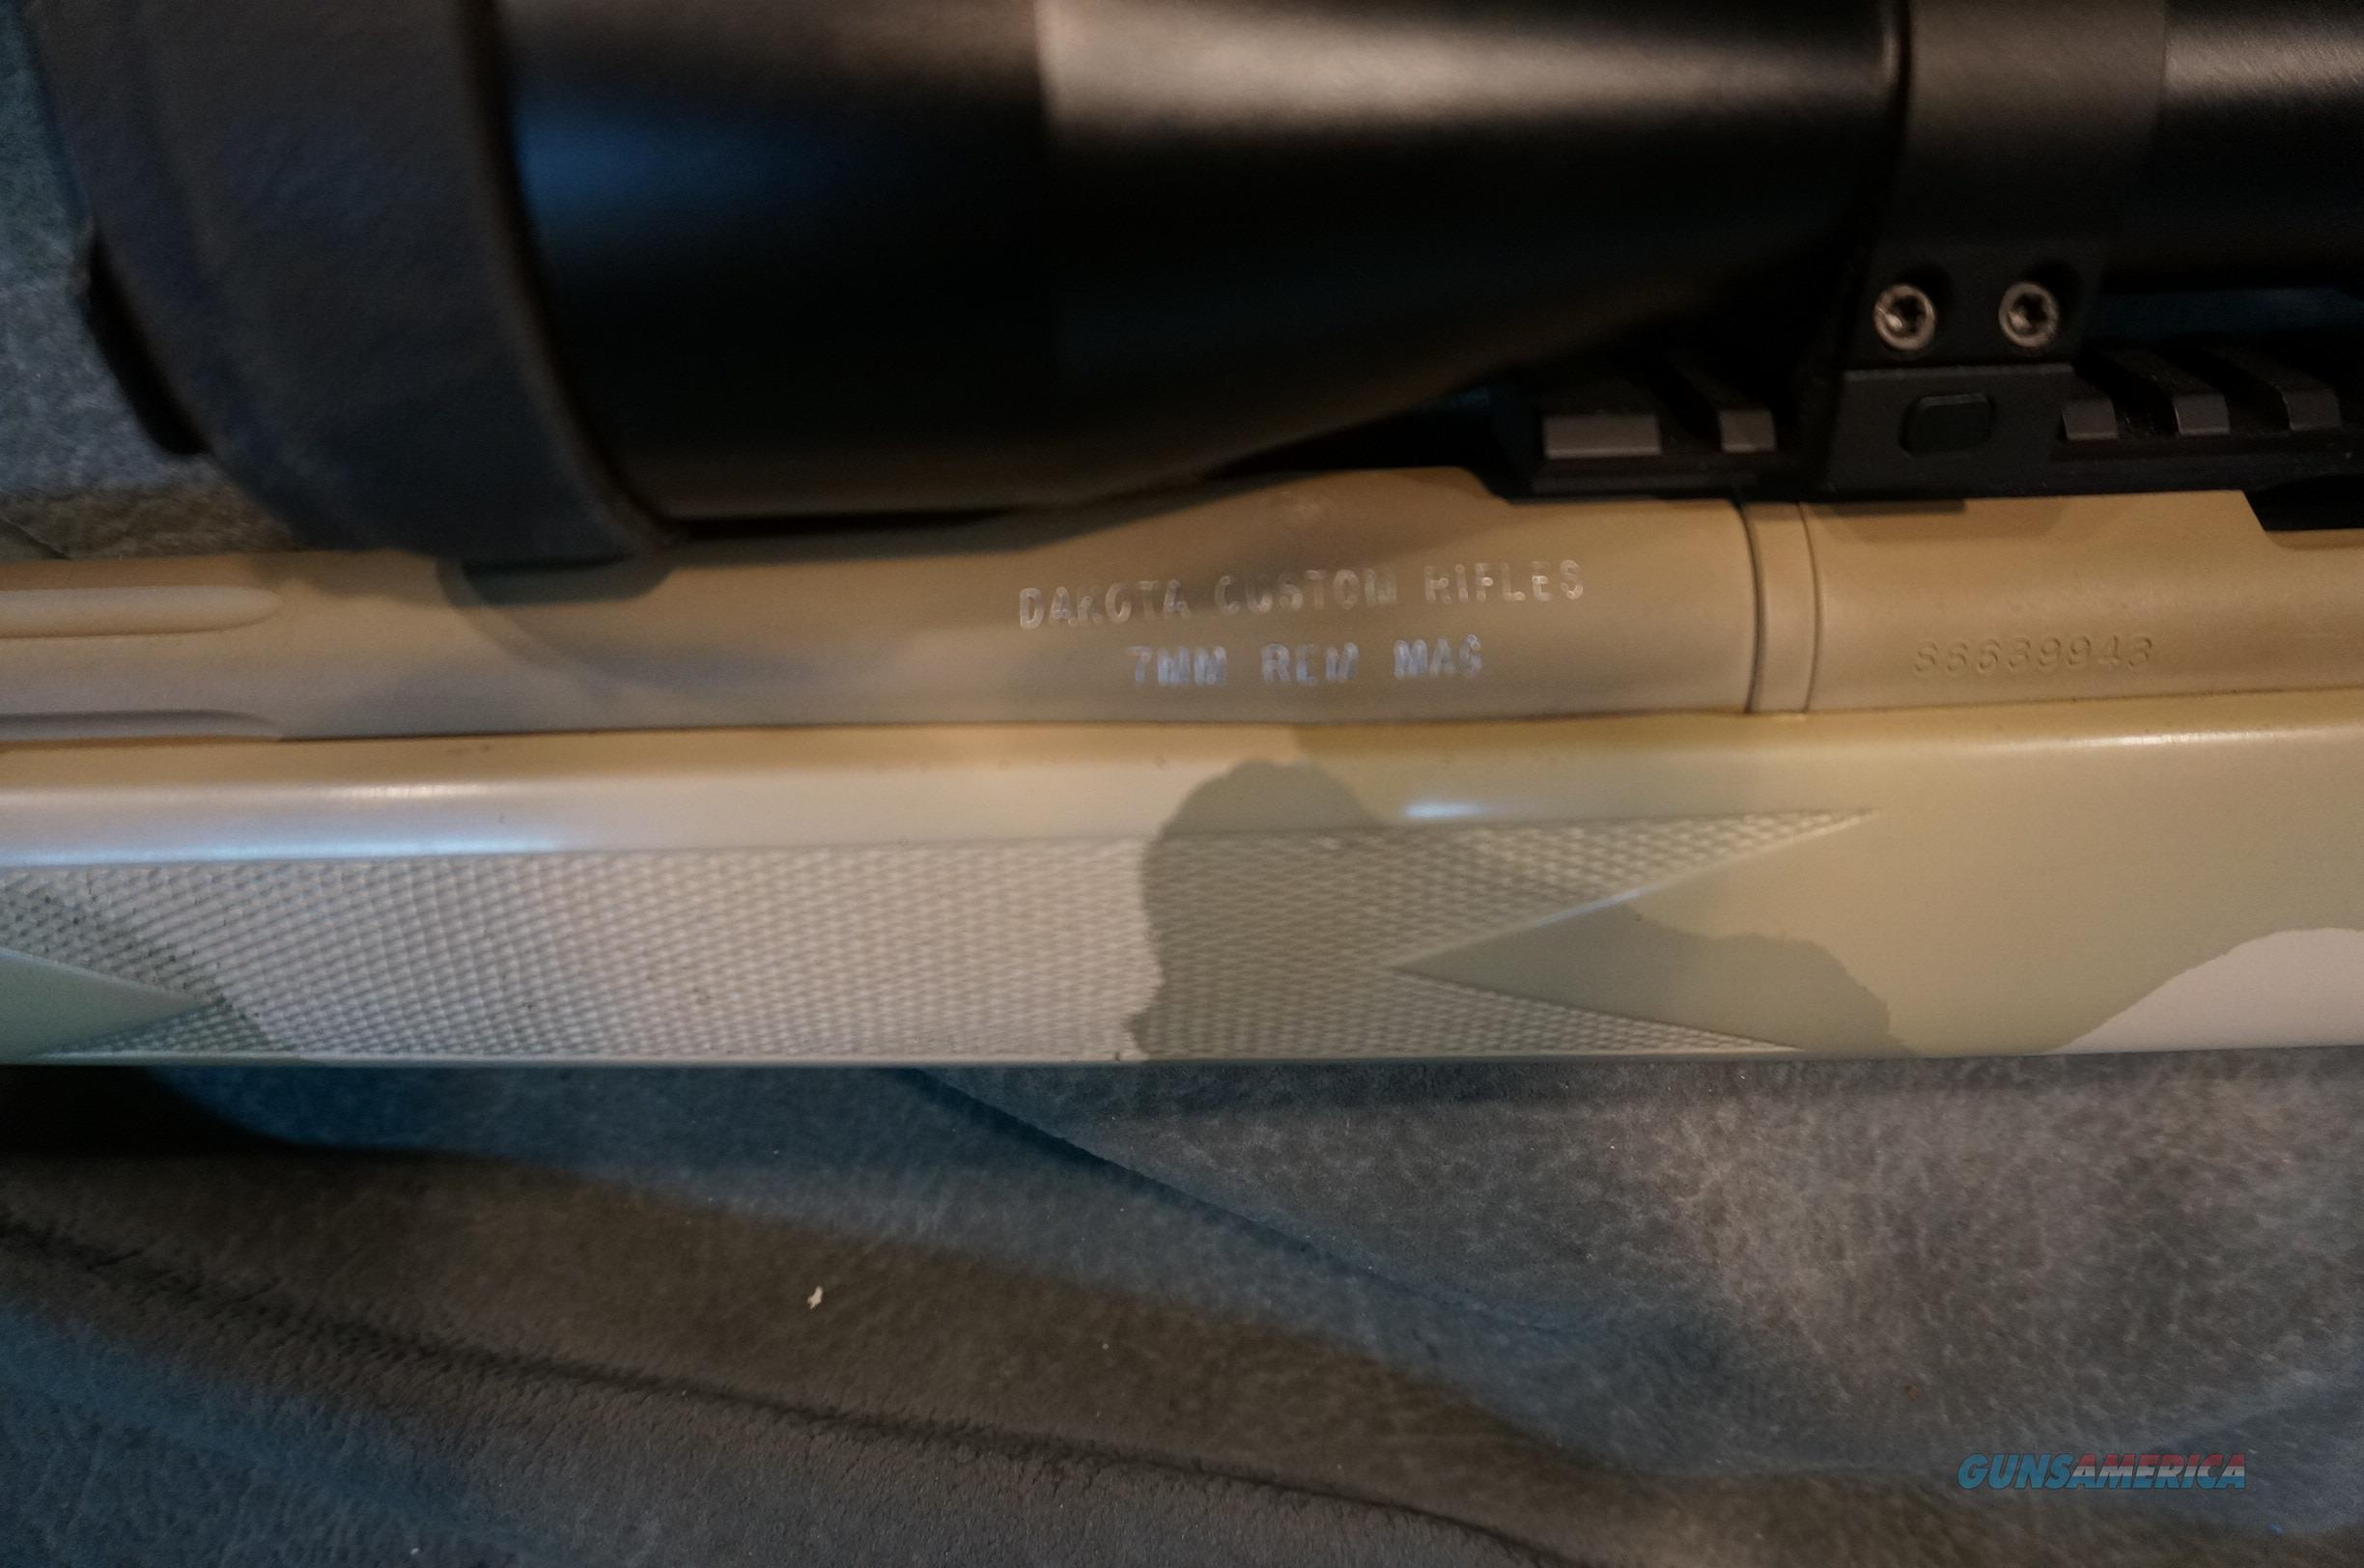 Dakota Custom Rifles 7mmRemMag w/Huskemaw 5-20X scope